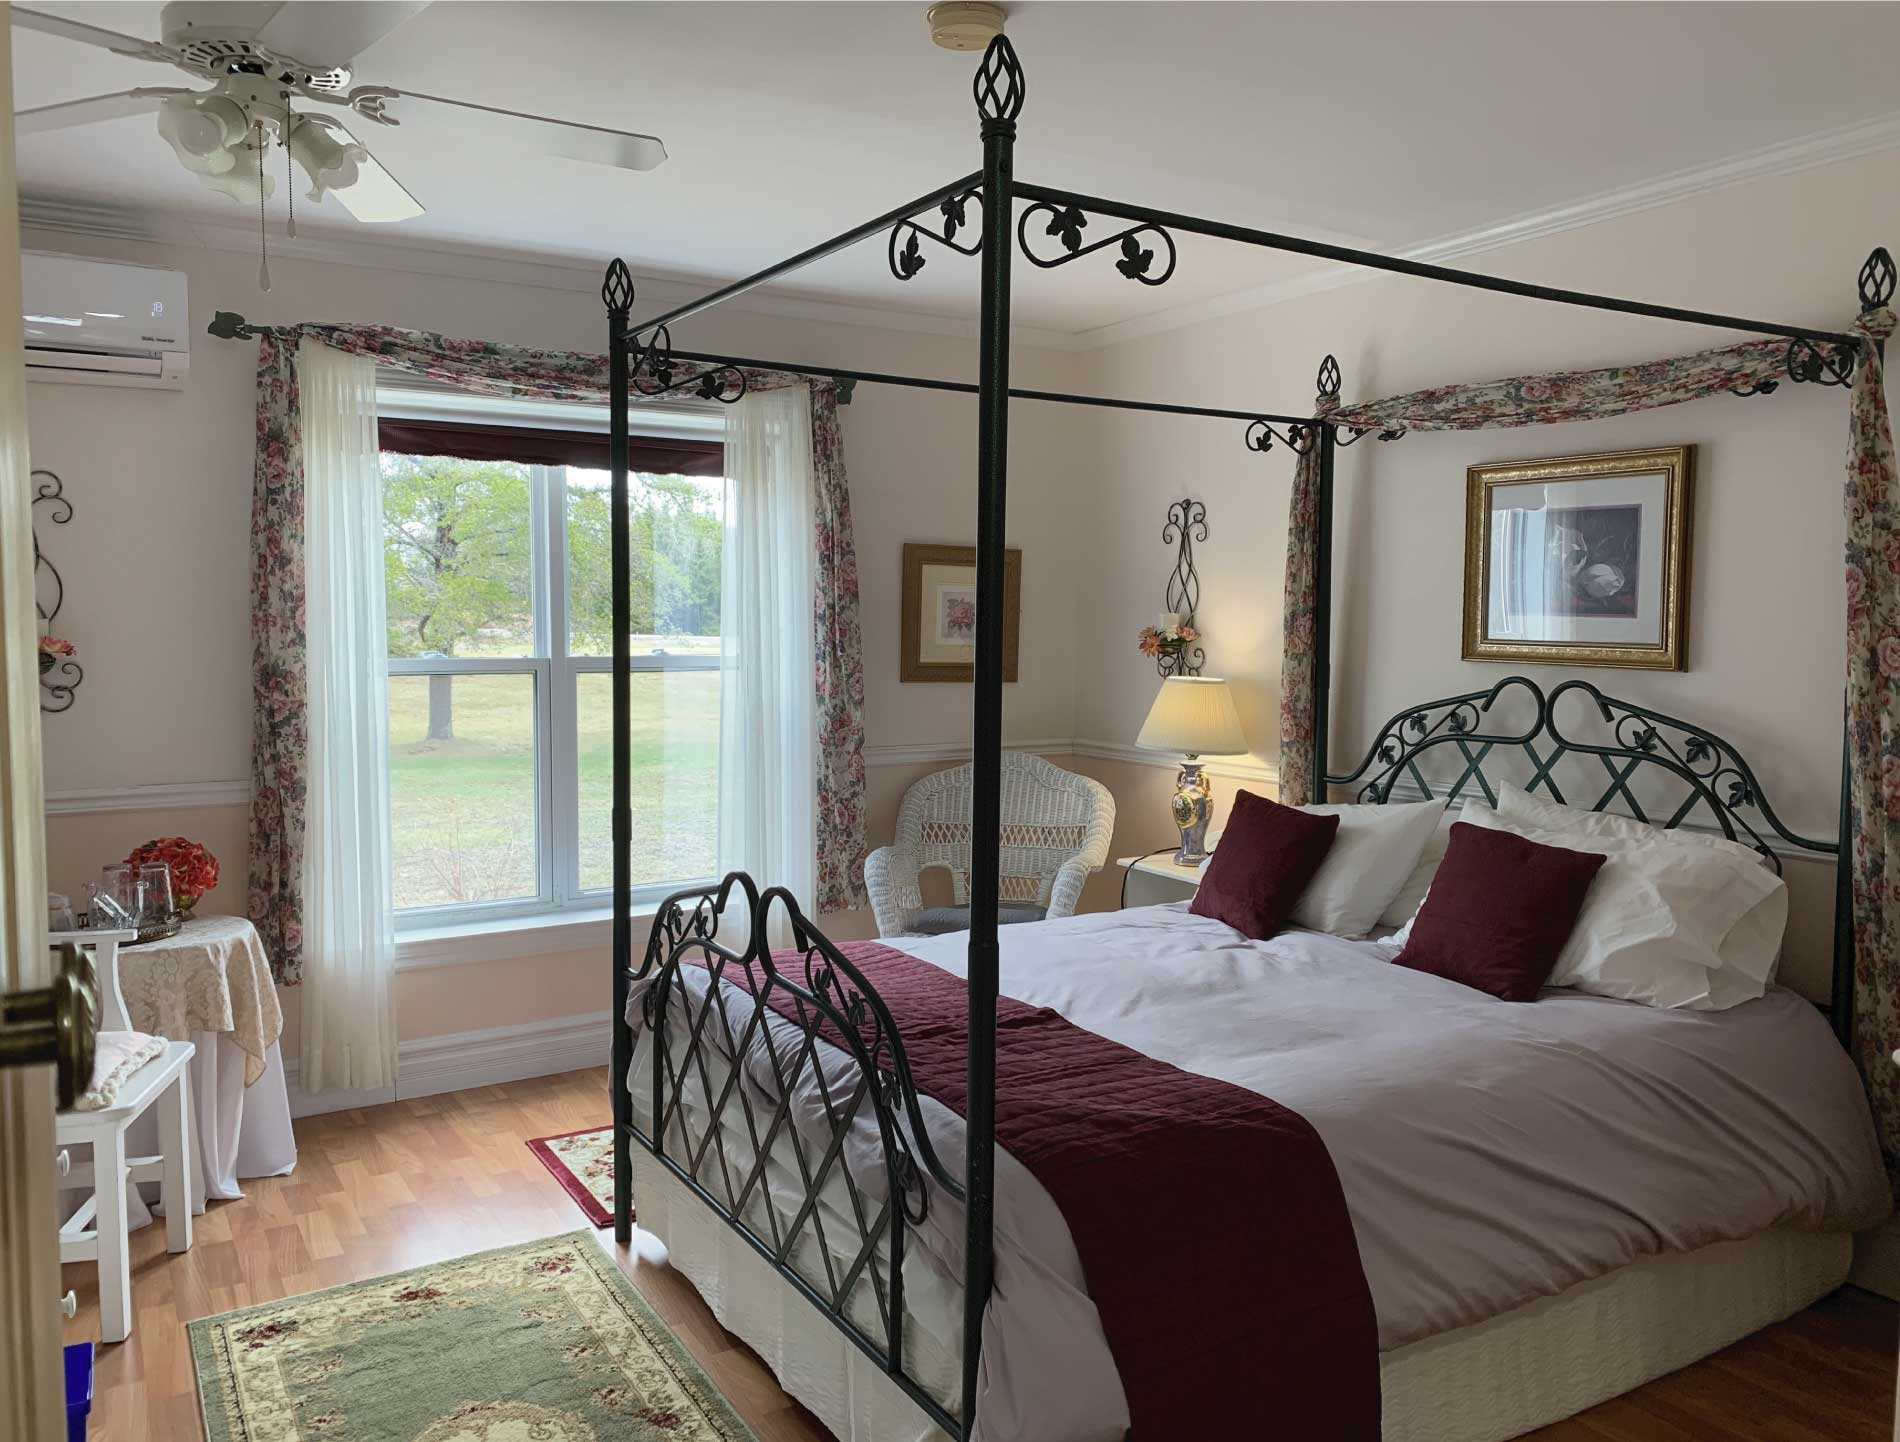 Enjoy our The Rose room